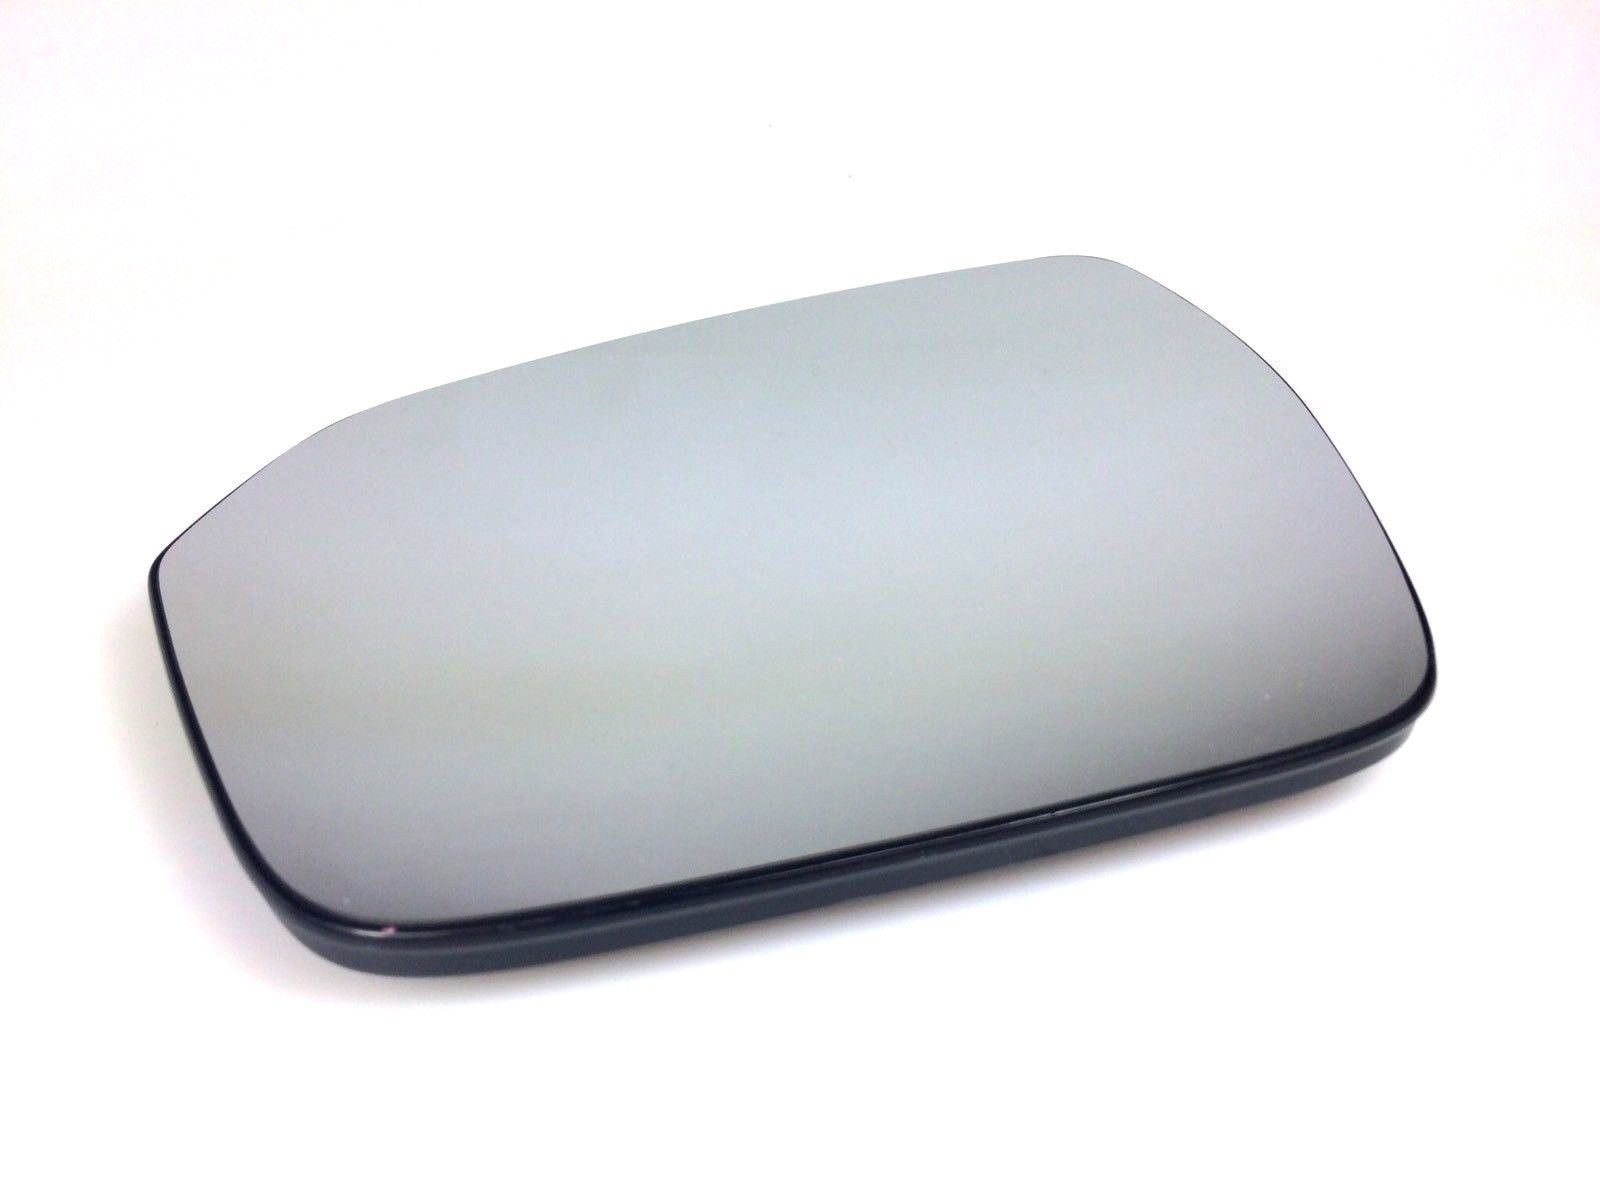 LAND ROVER RANGE ROVER EVOQUE DOOR MIRROR GLASS LH (LHD) – LR025212.